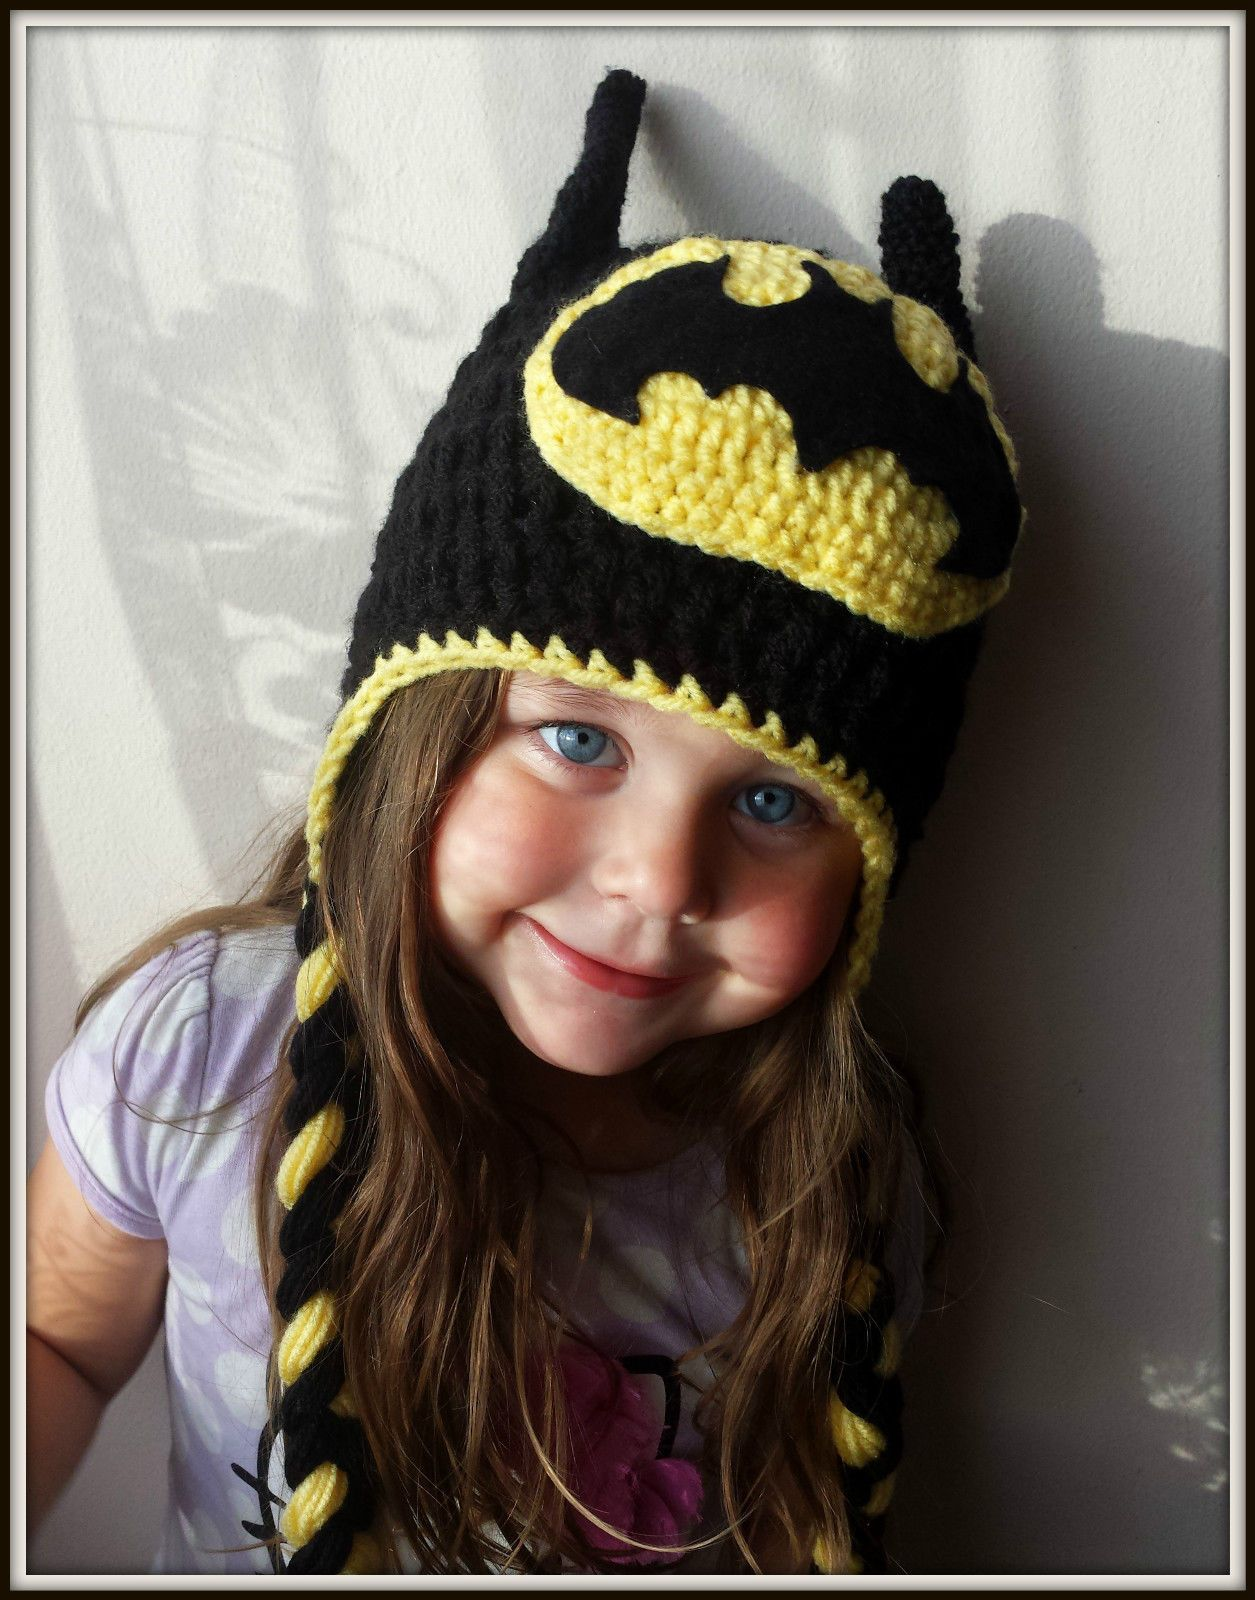 Batman crochet handmade kids baby hat size from 3-6 months to adult CHunky